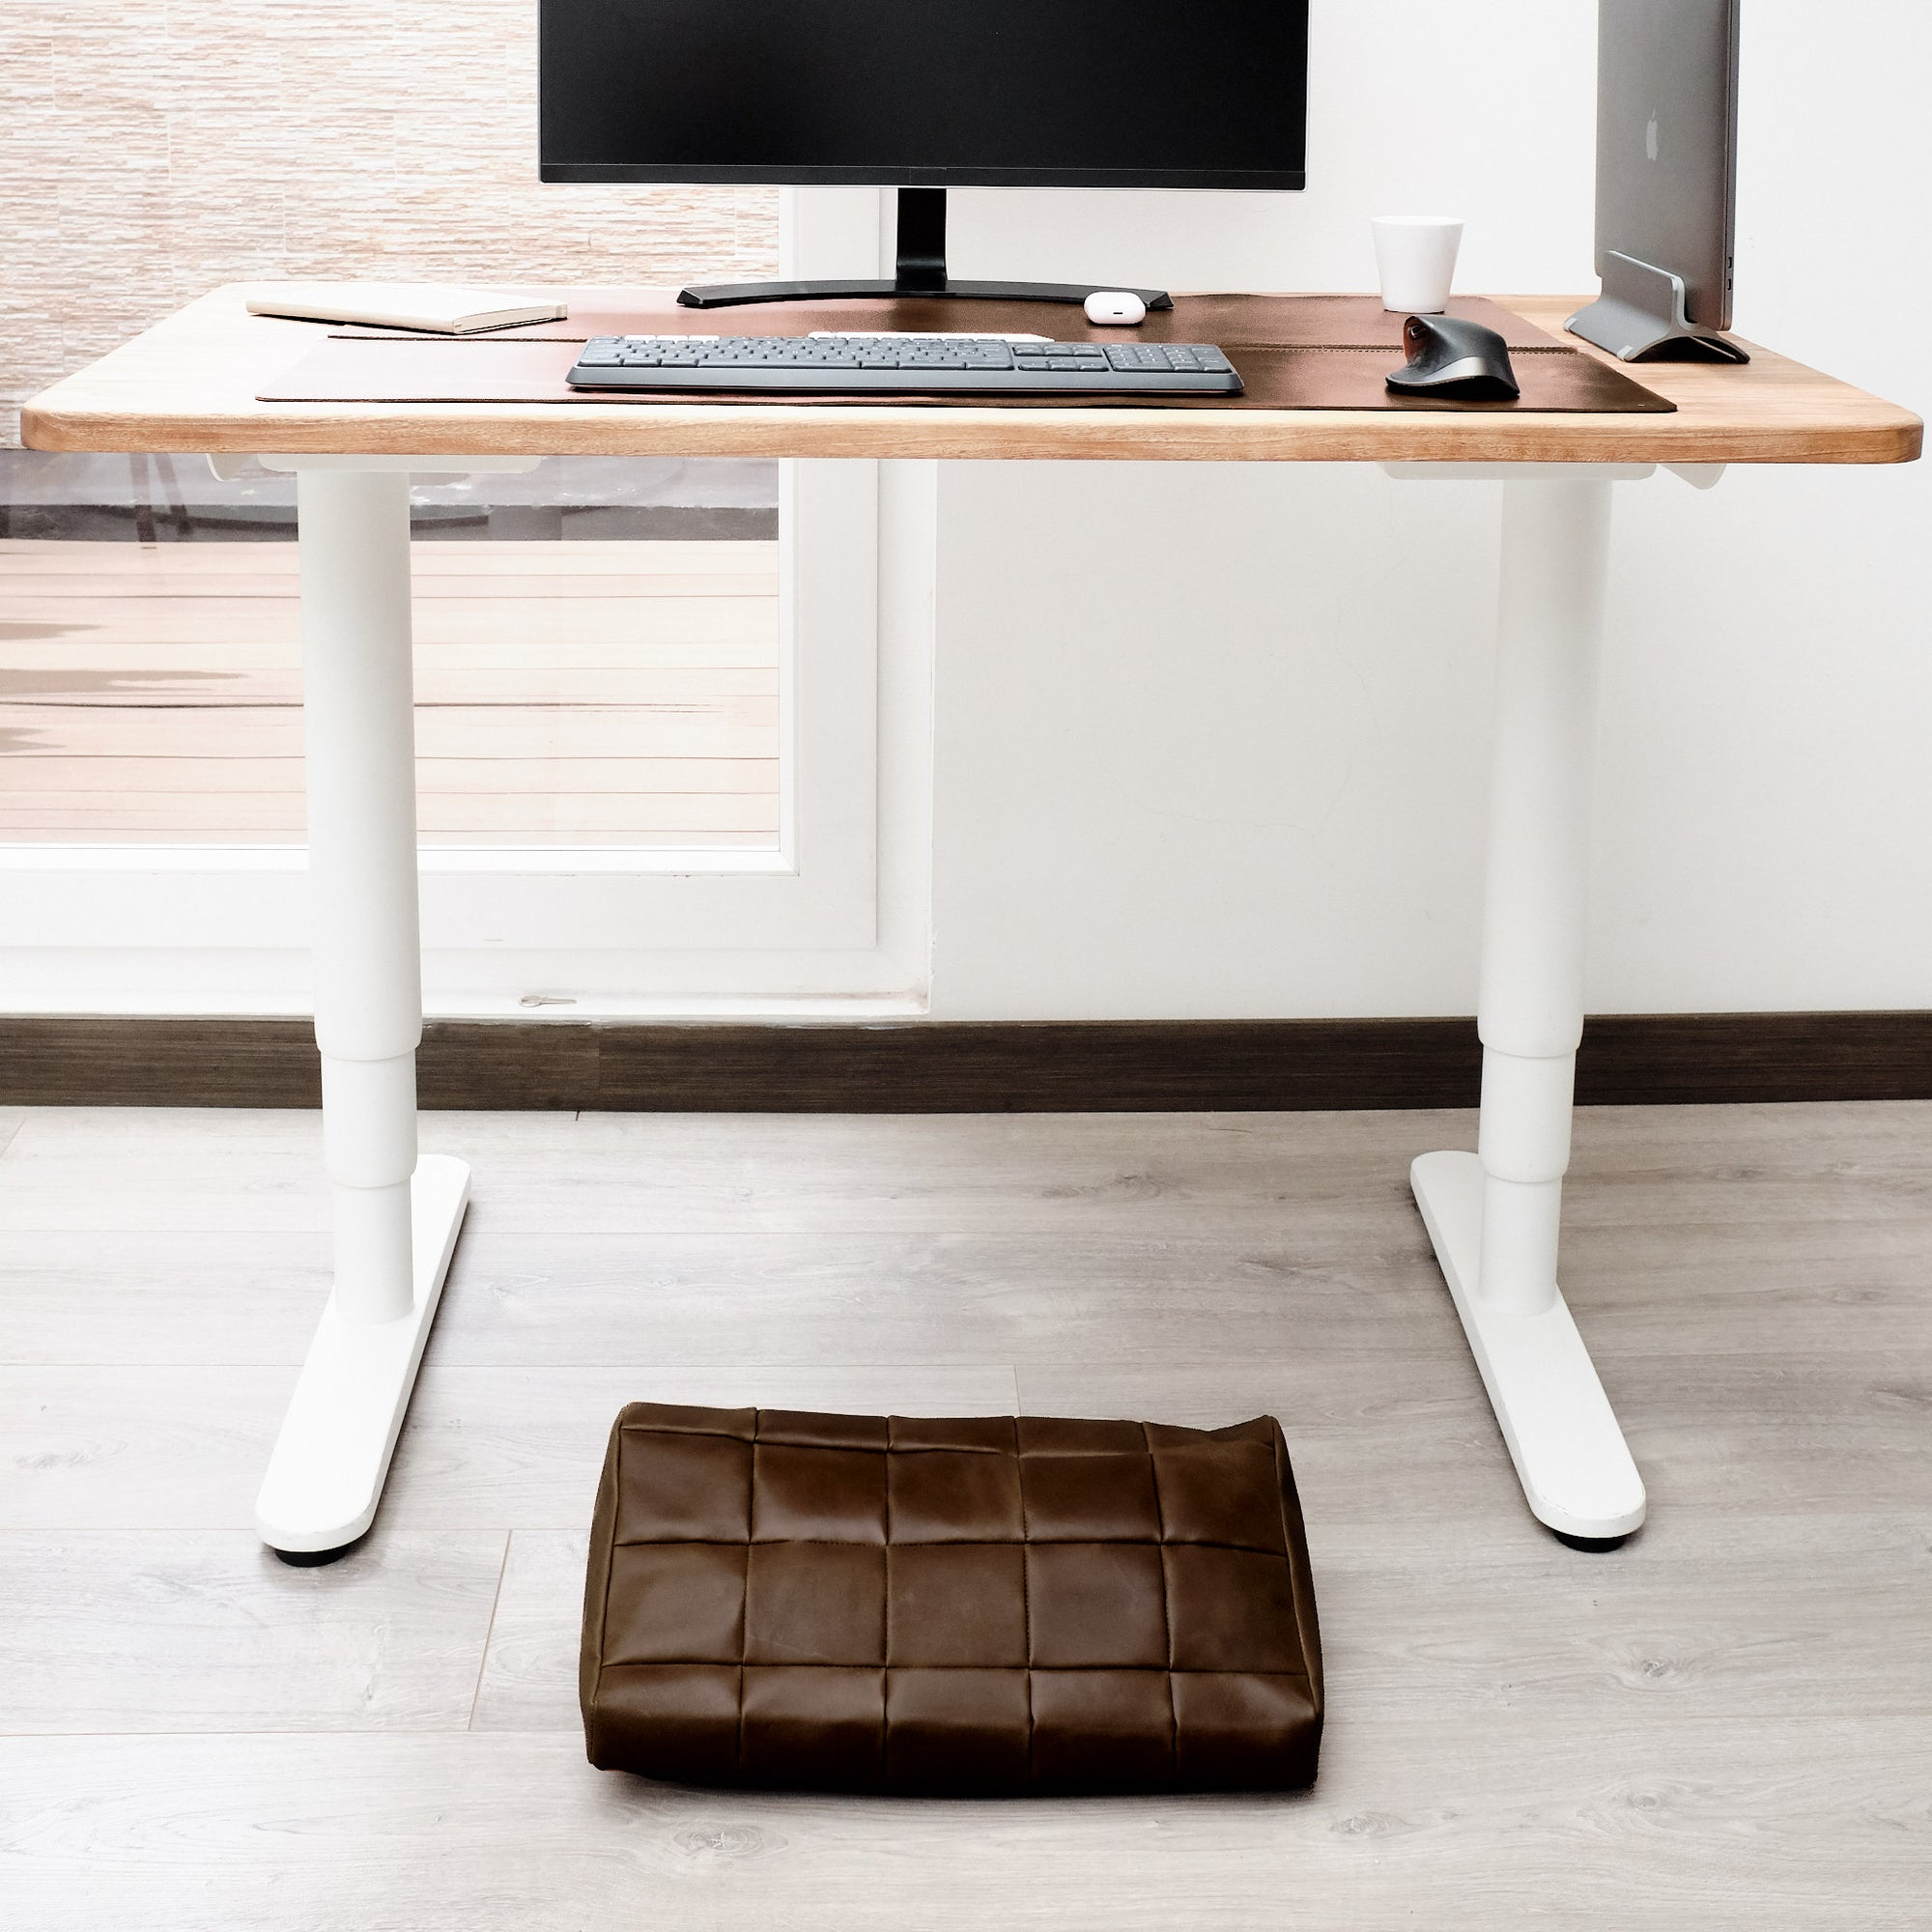 Cover. Ergonomic Desk Footrest Cover in Brown by Modoun Home Decor